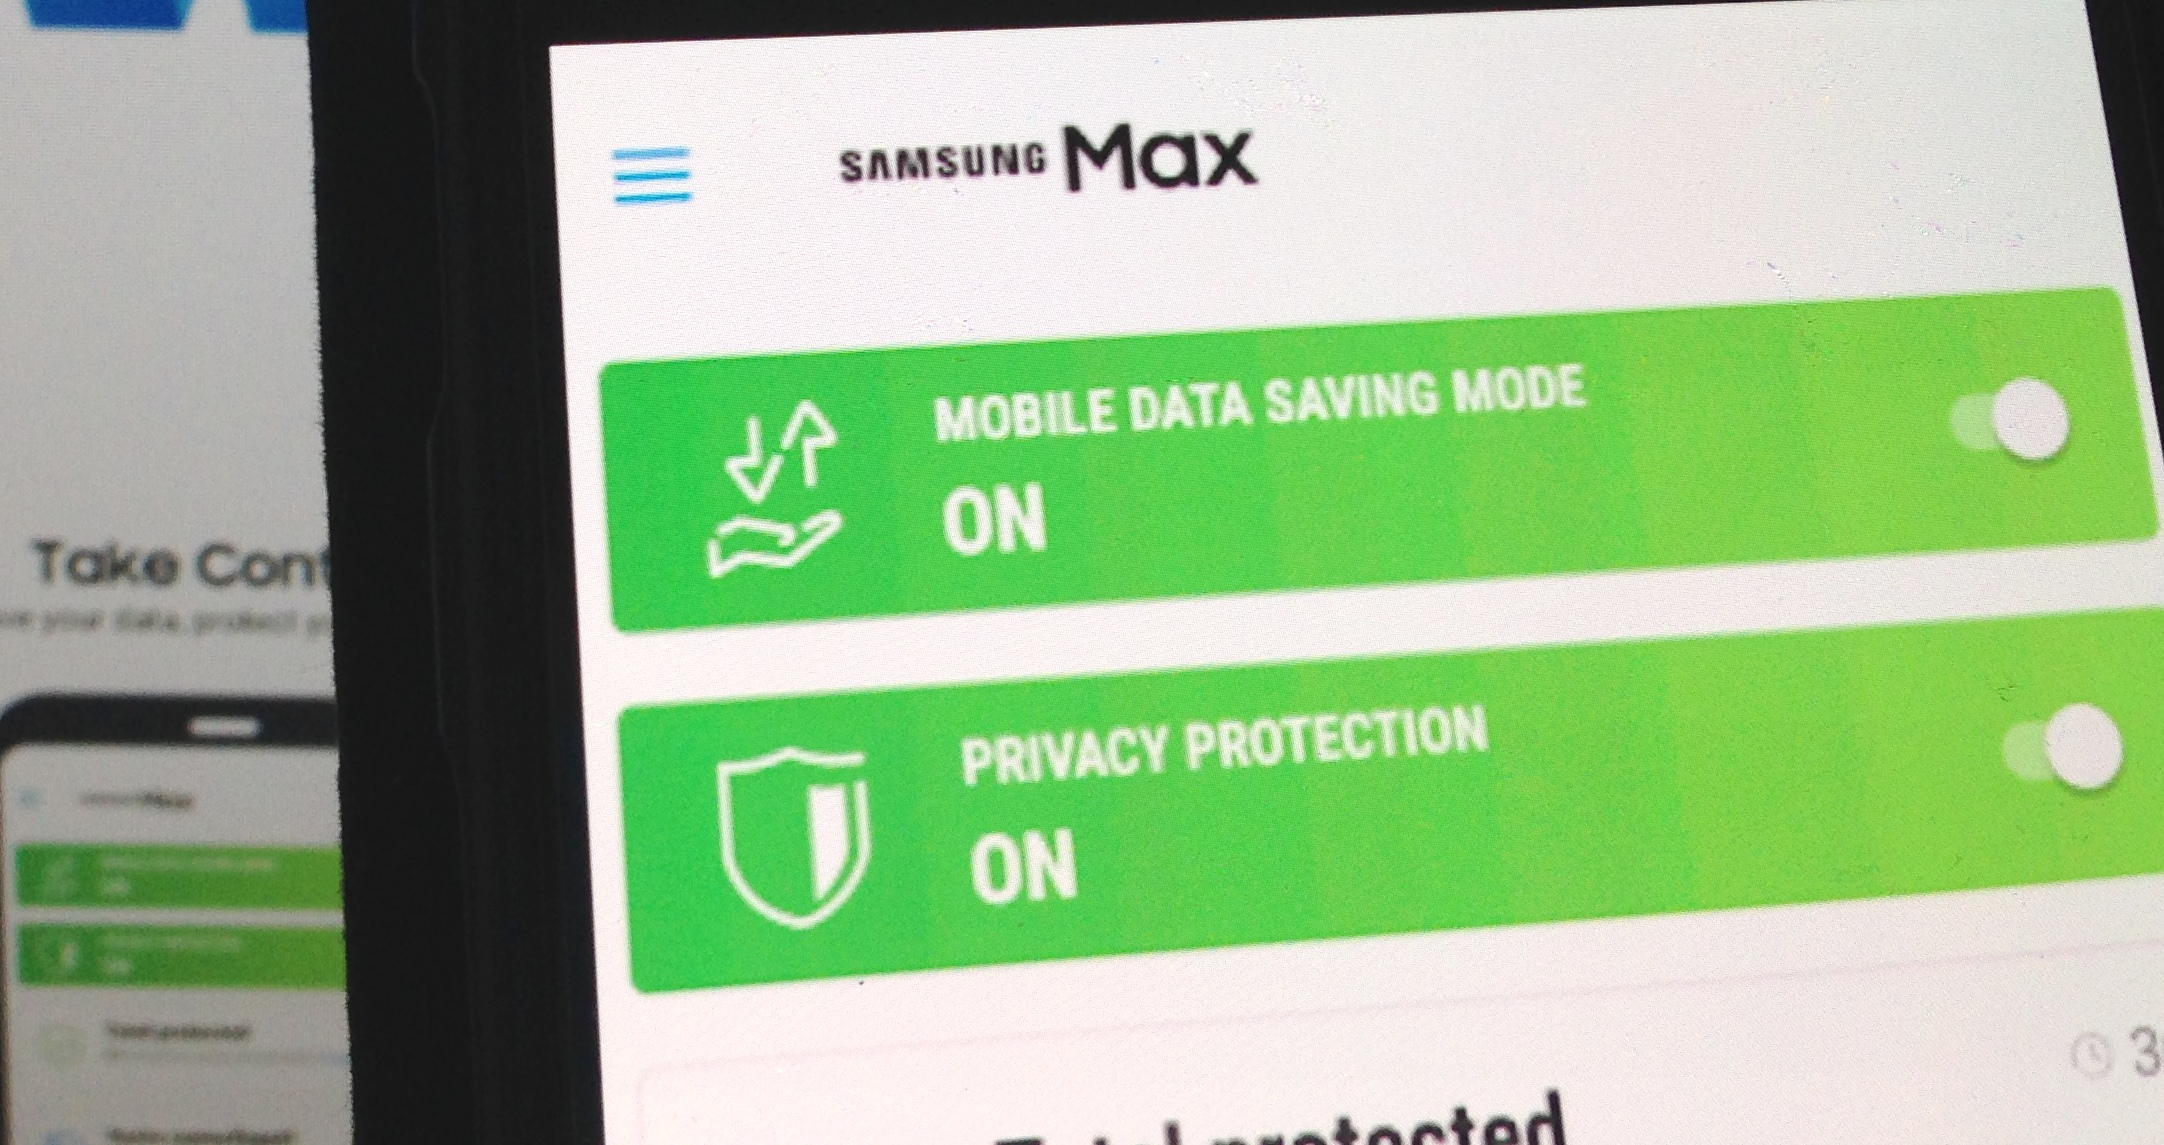 Samsung Max app launched; comes with 'Data Saving Mode' and 'Privacy Protection'